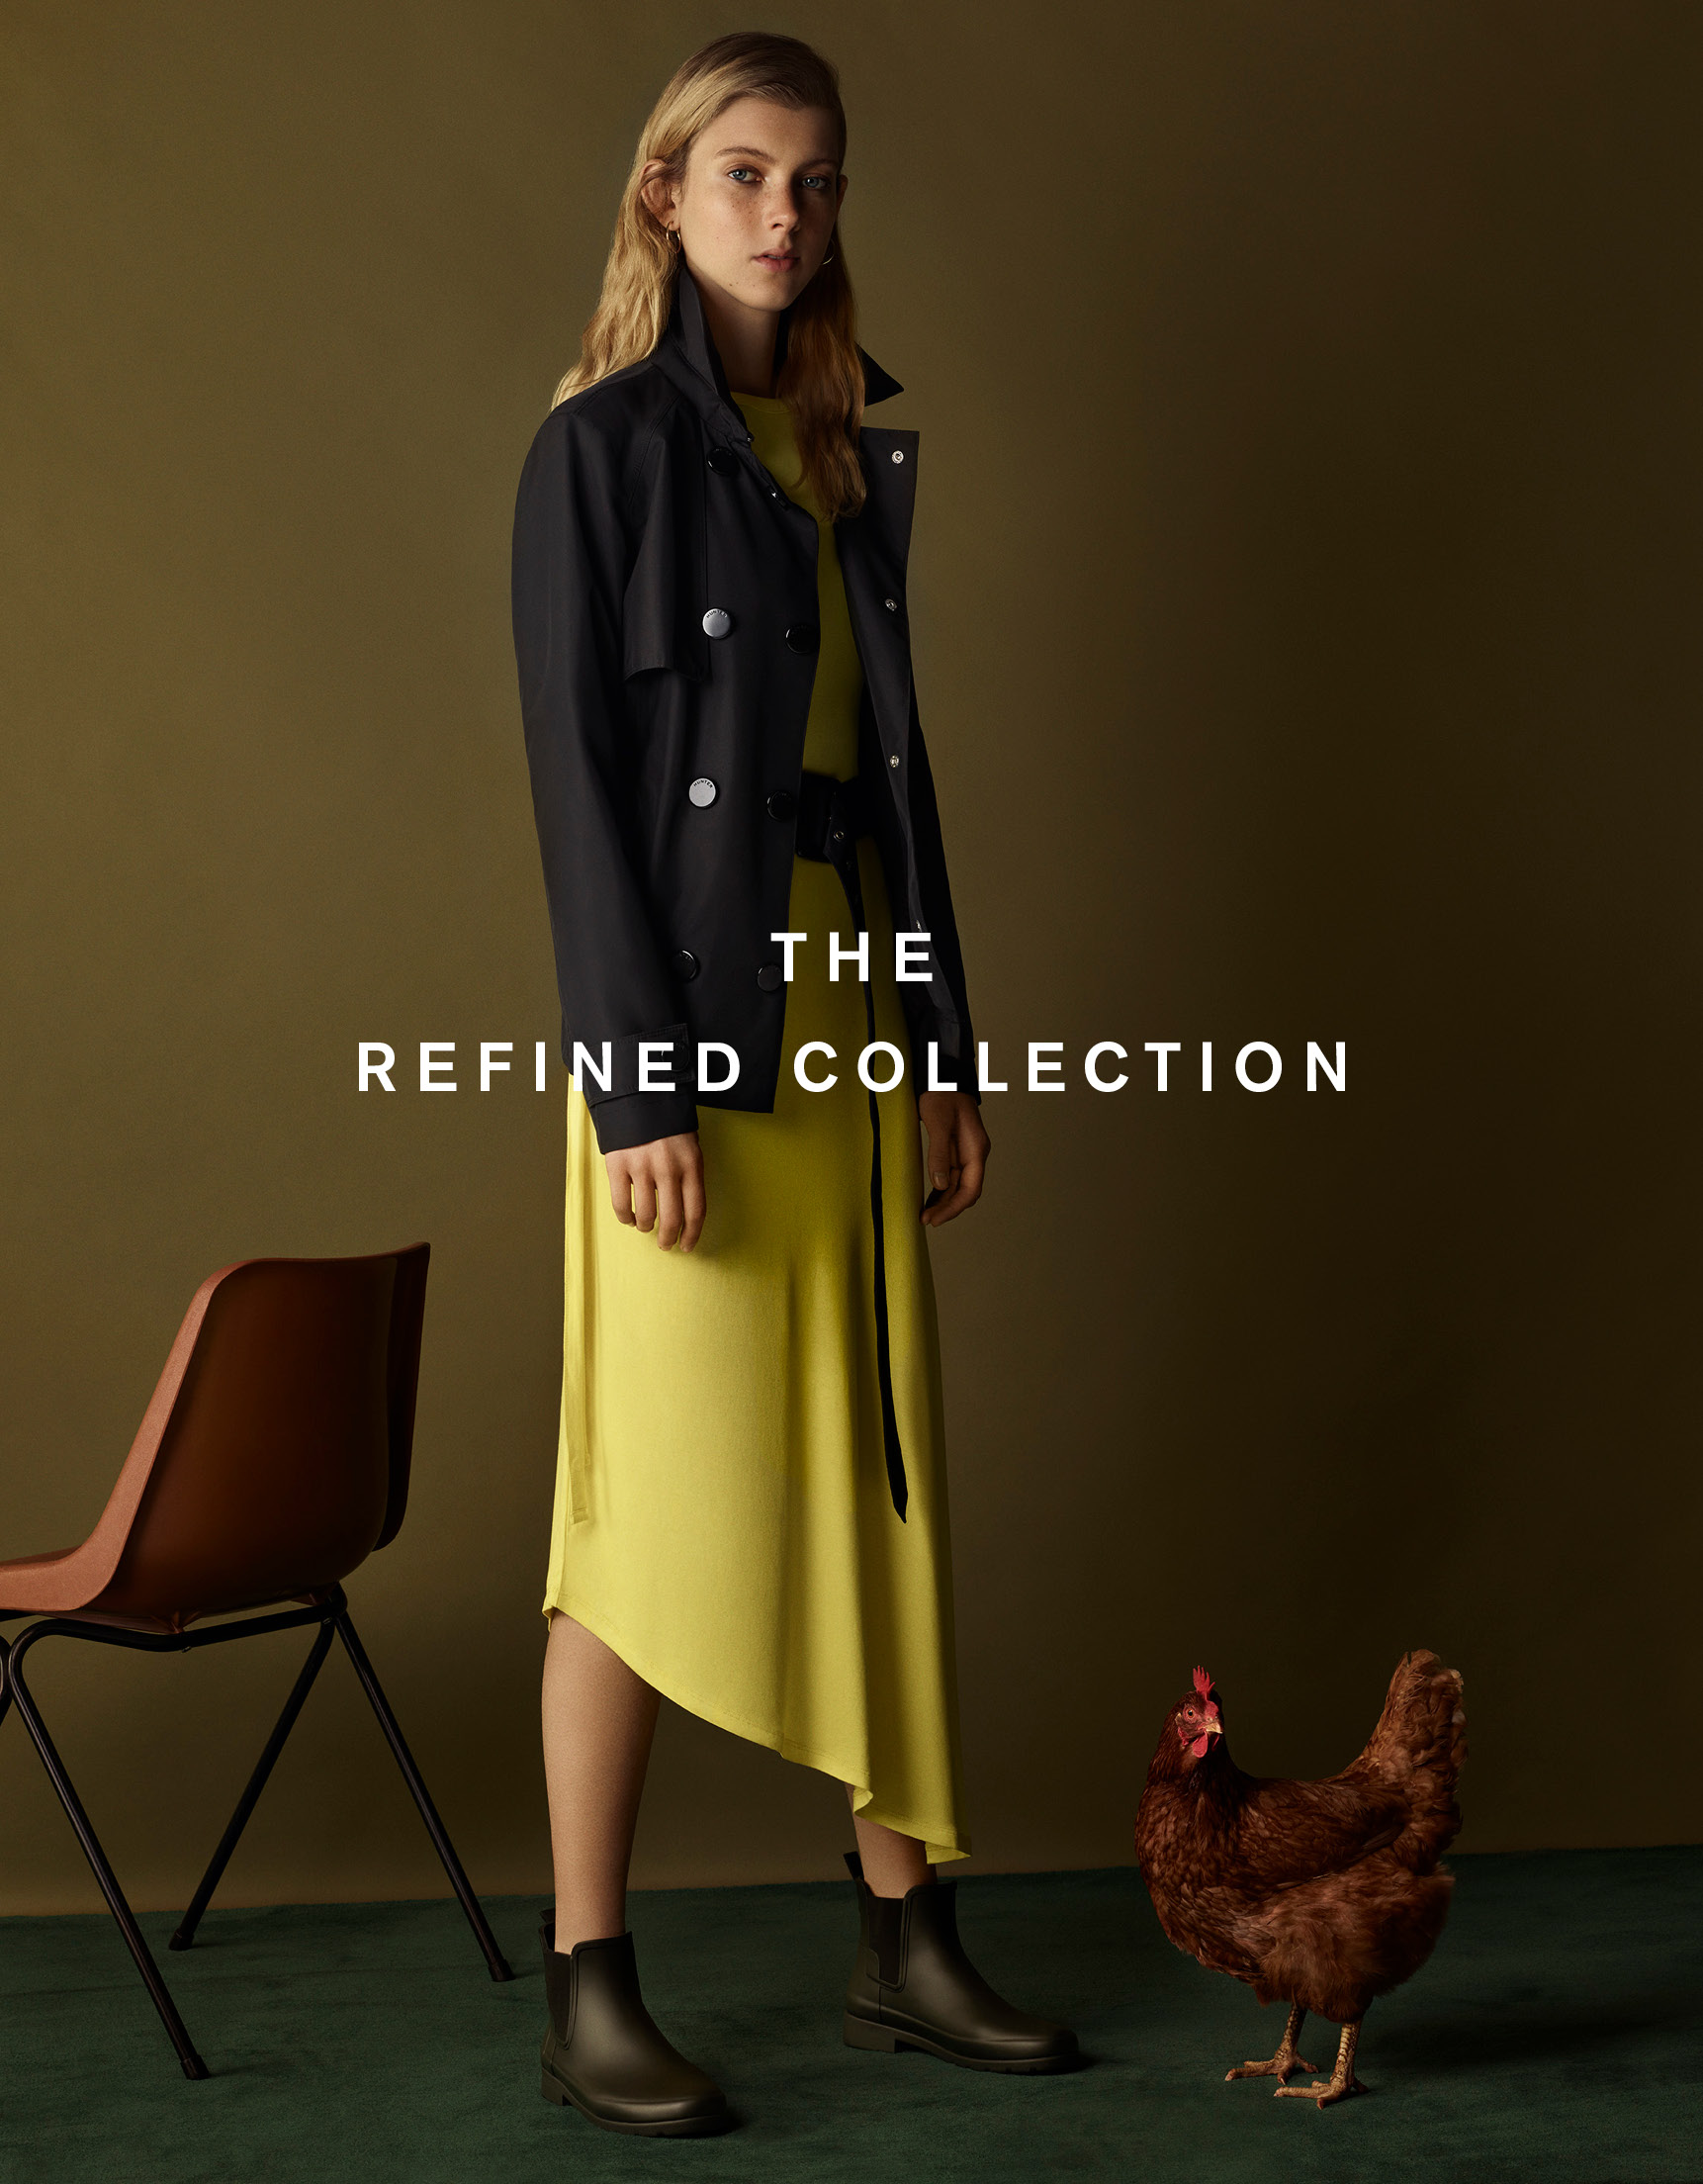 The Refined Collection